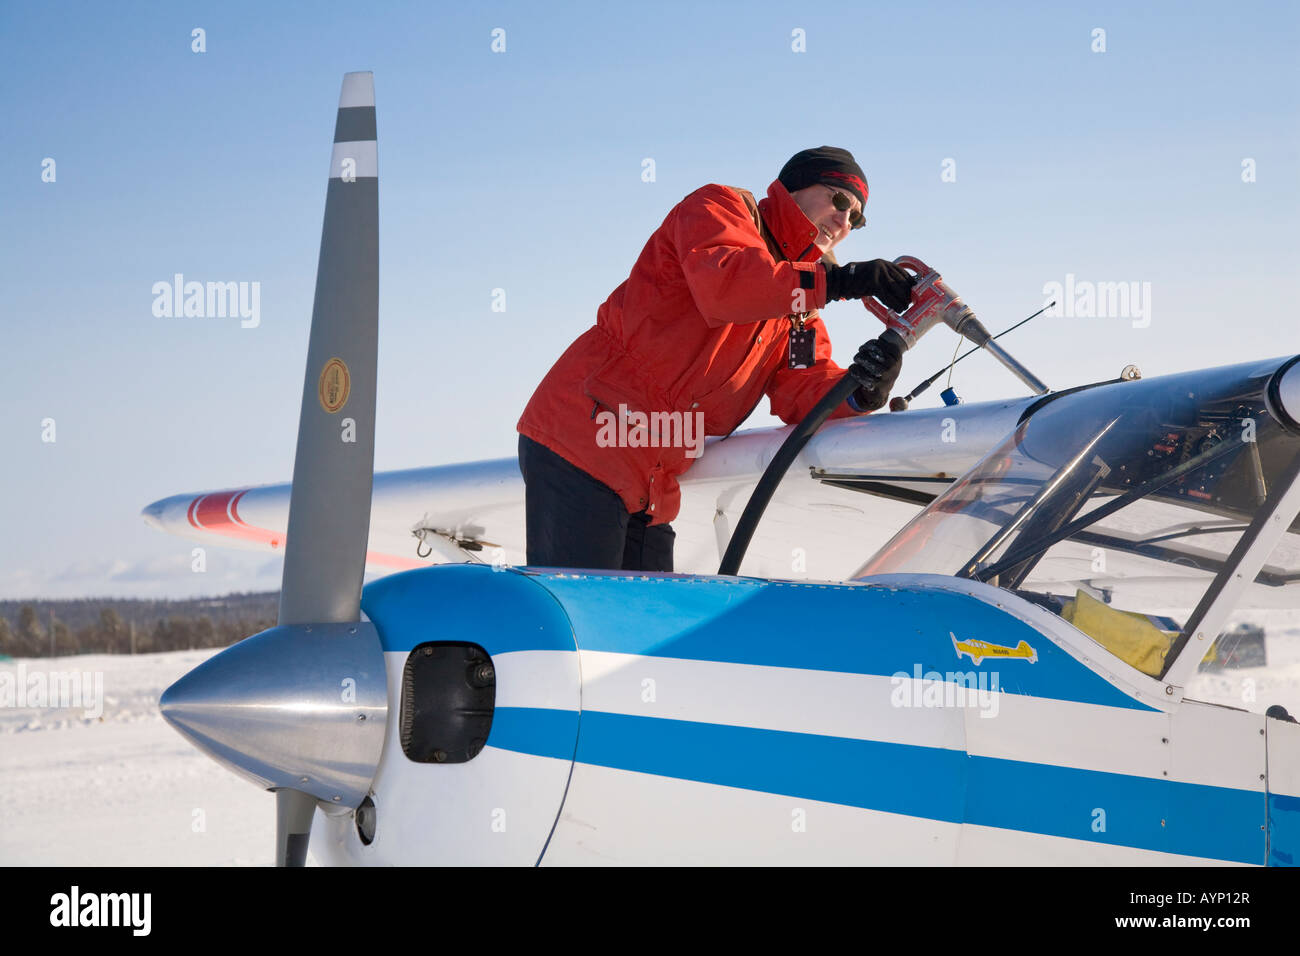 Pilot Olle Norberg refuelling his Piper PA18-150 Super Club on the Kiruna airport - Stock Image